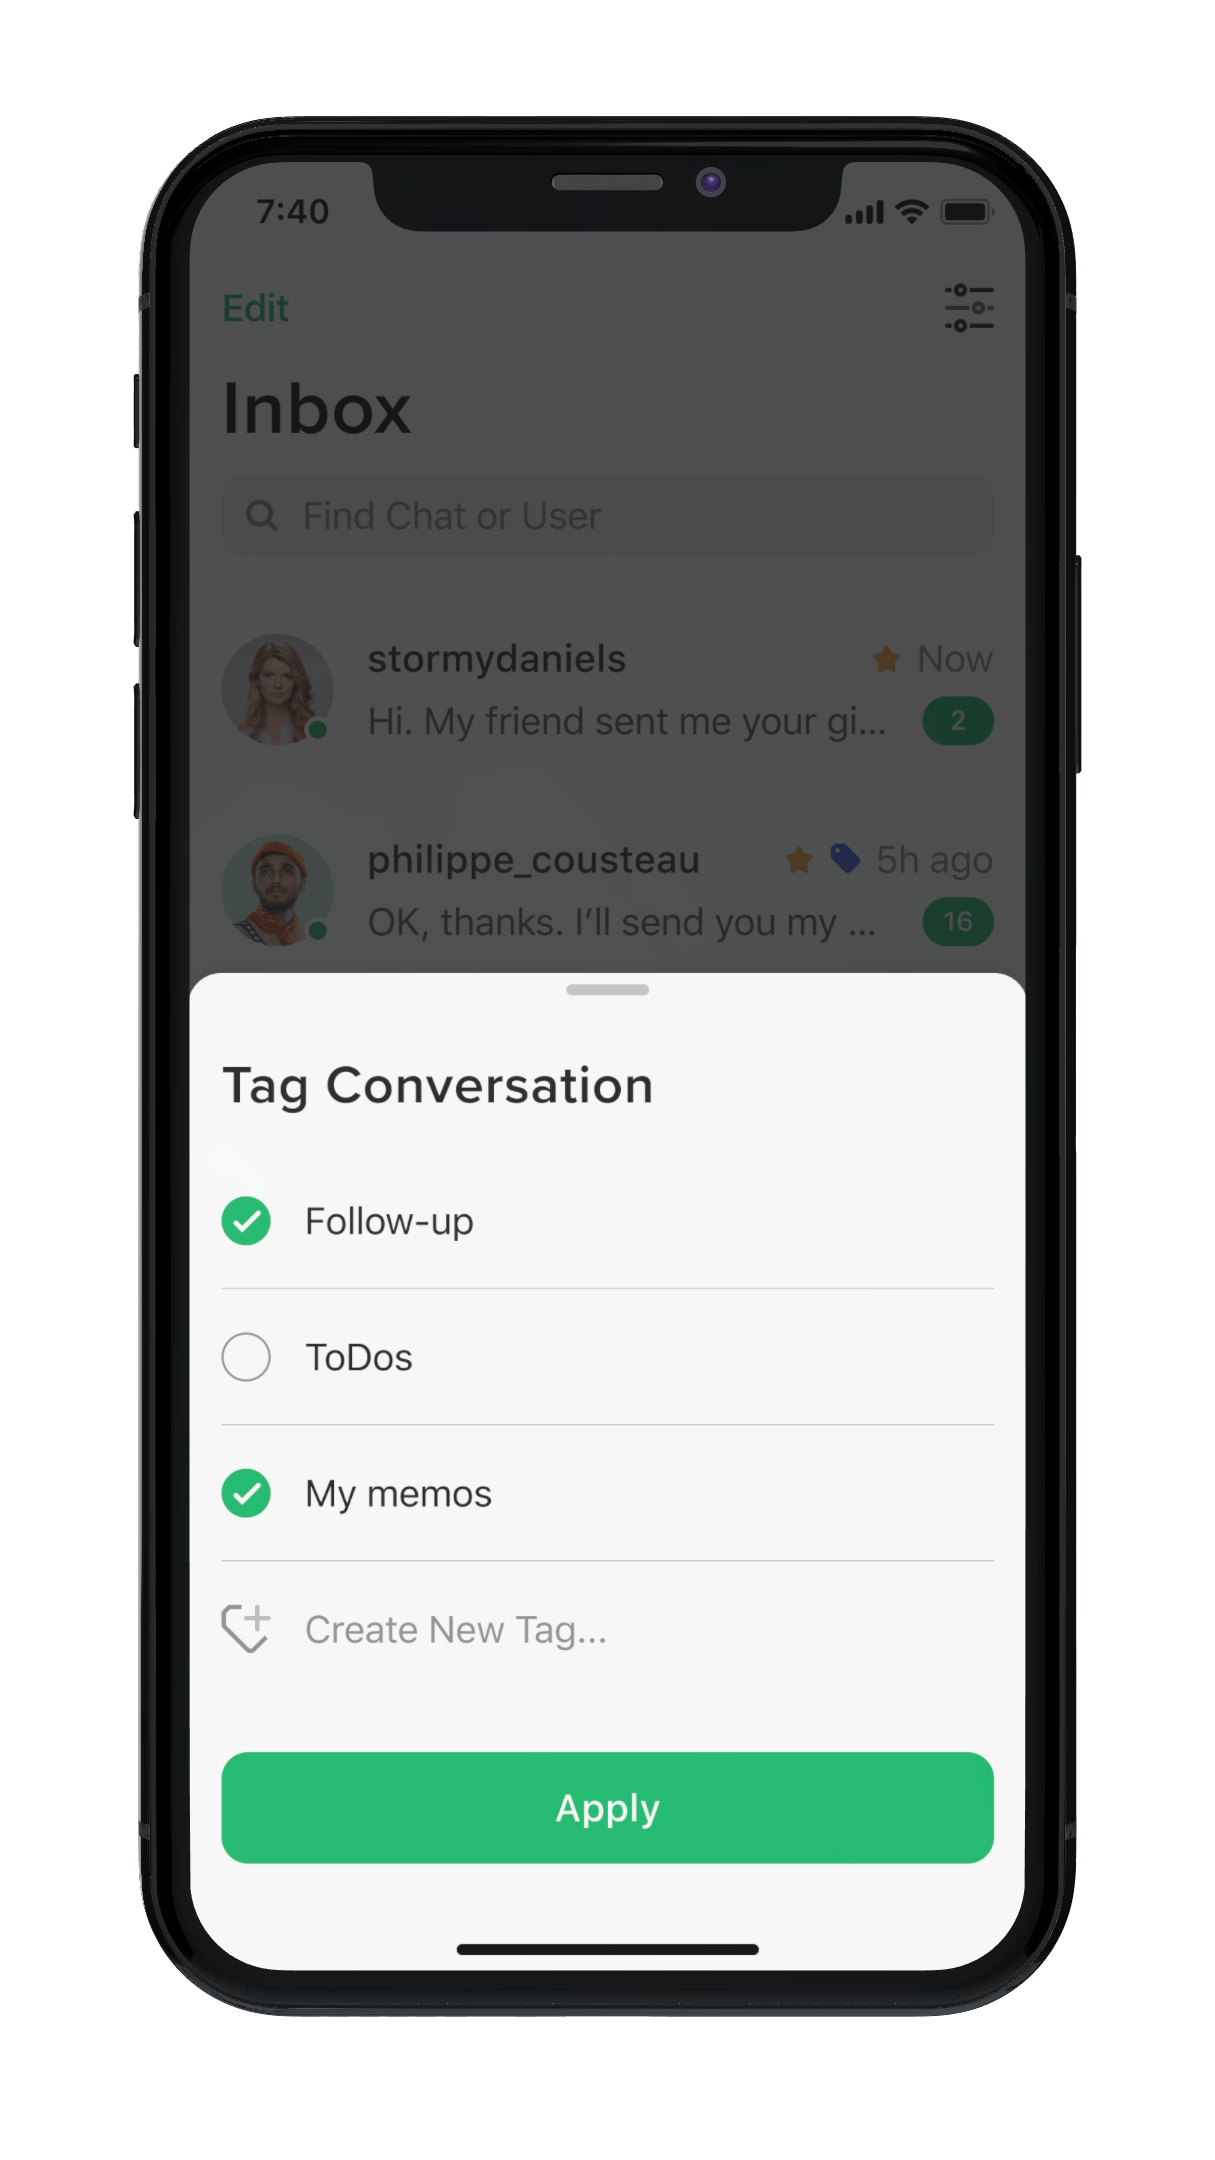 07-Inbox_Actions_Tag